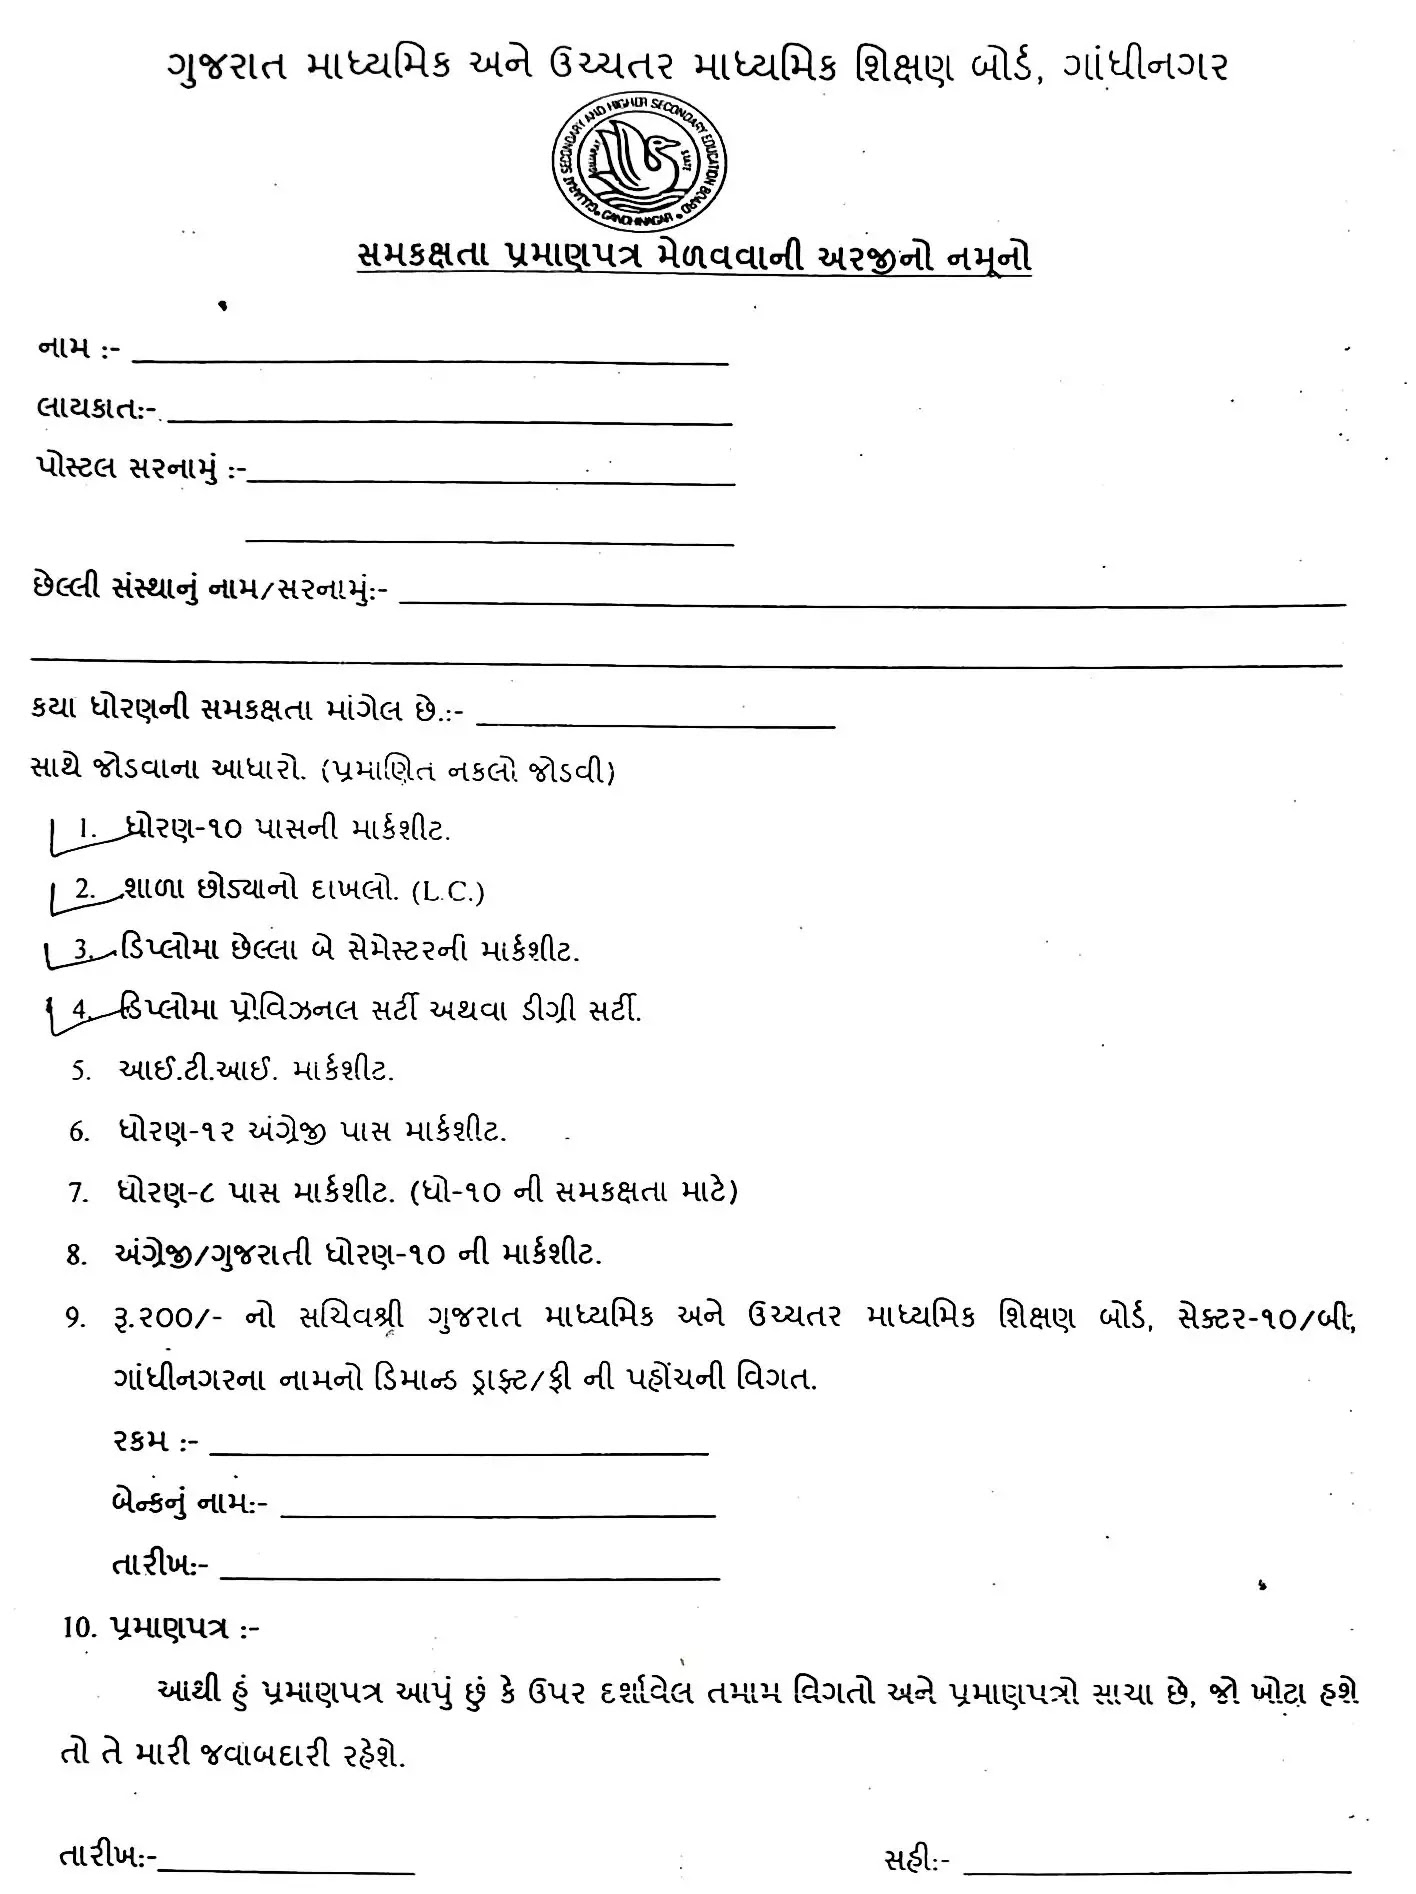 gseb 12th equivalent certificate form